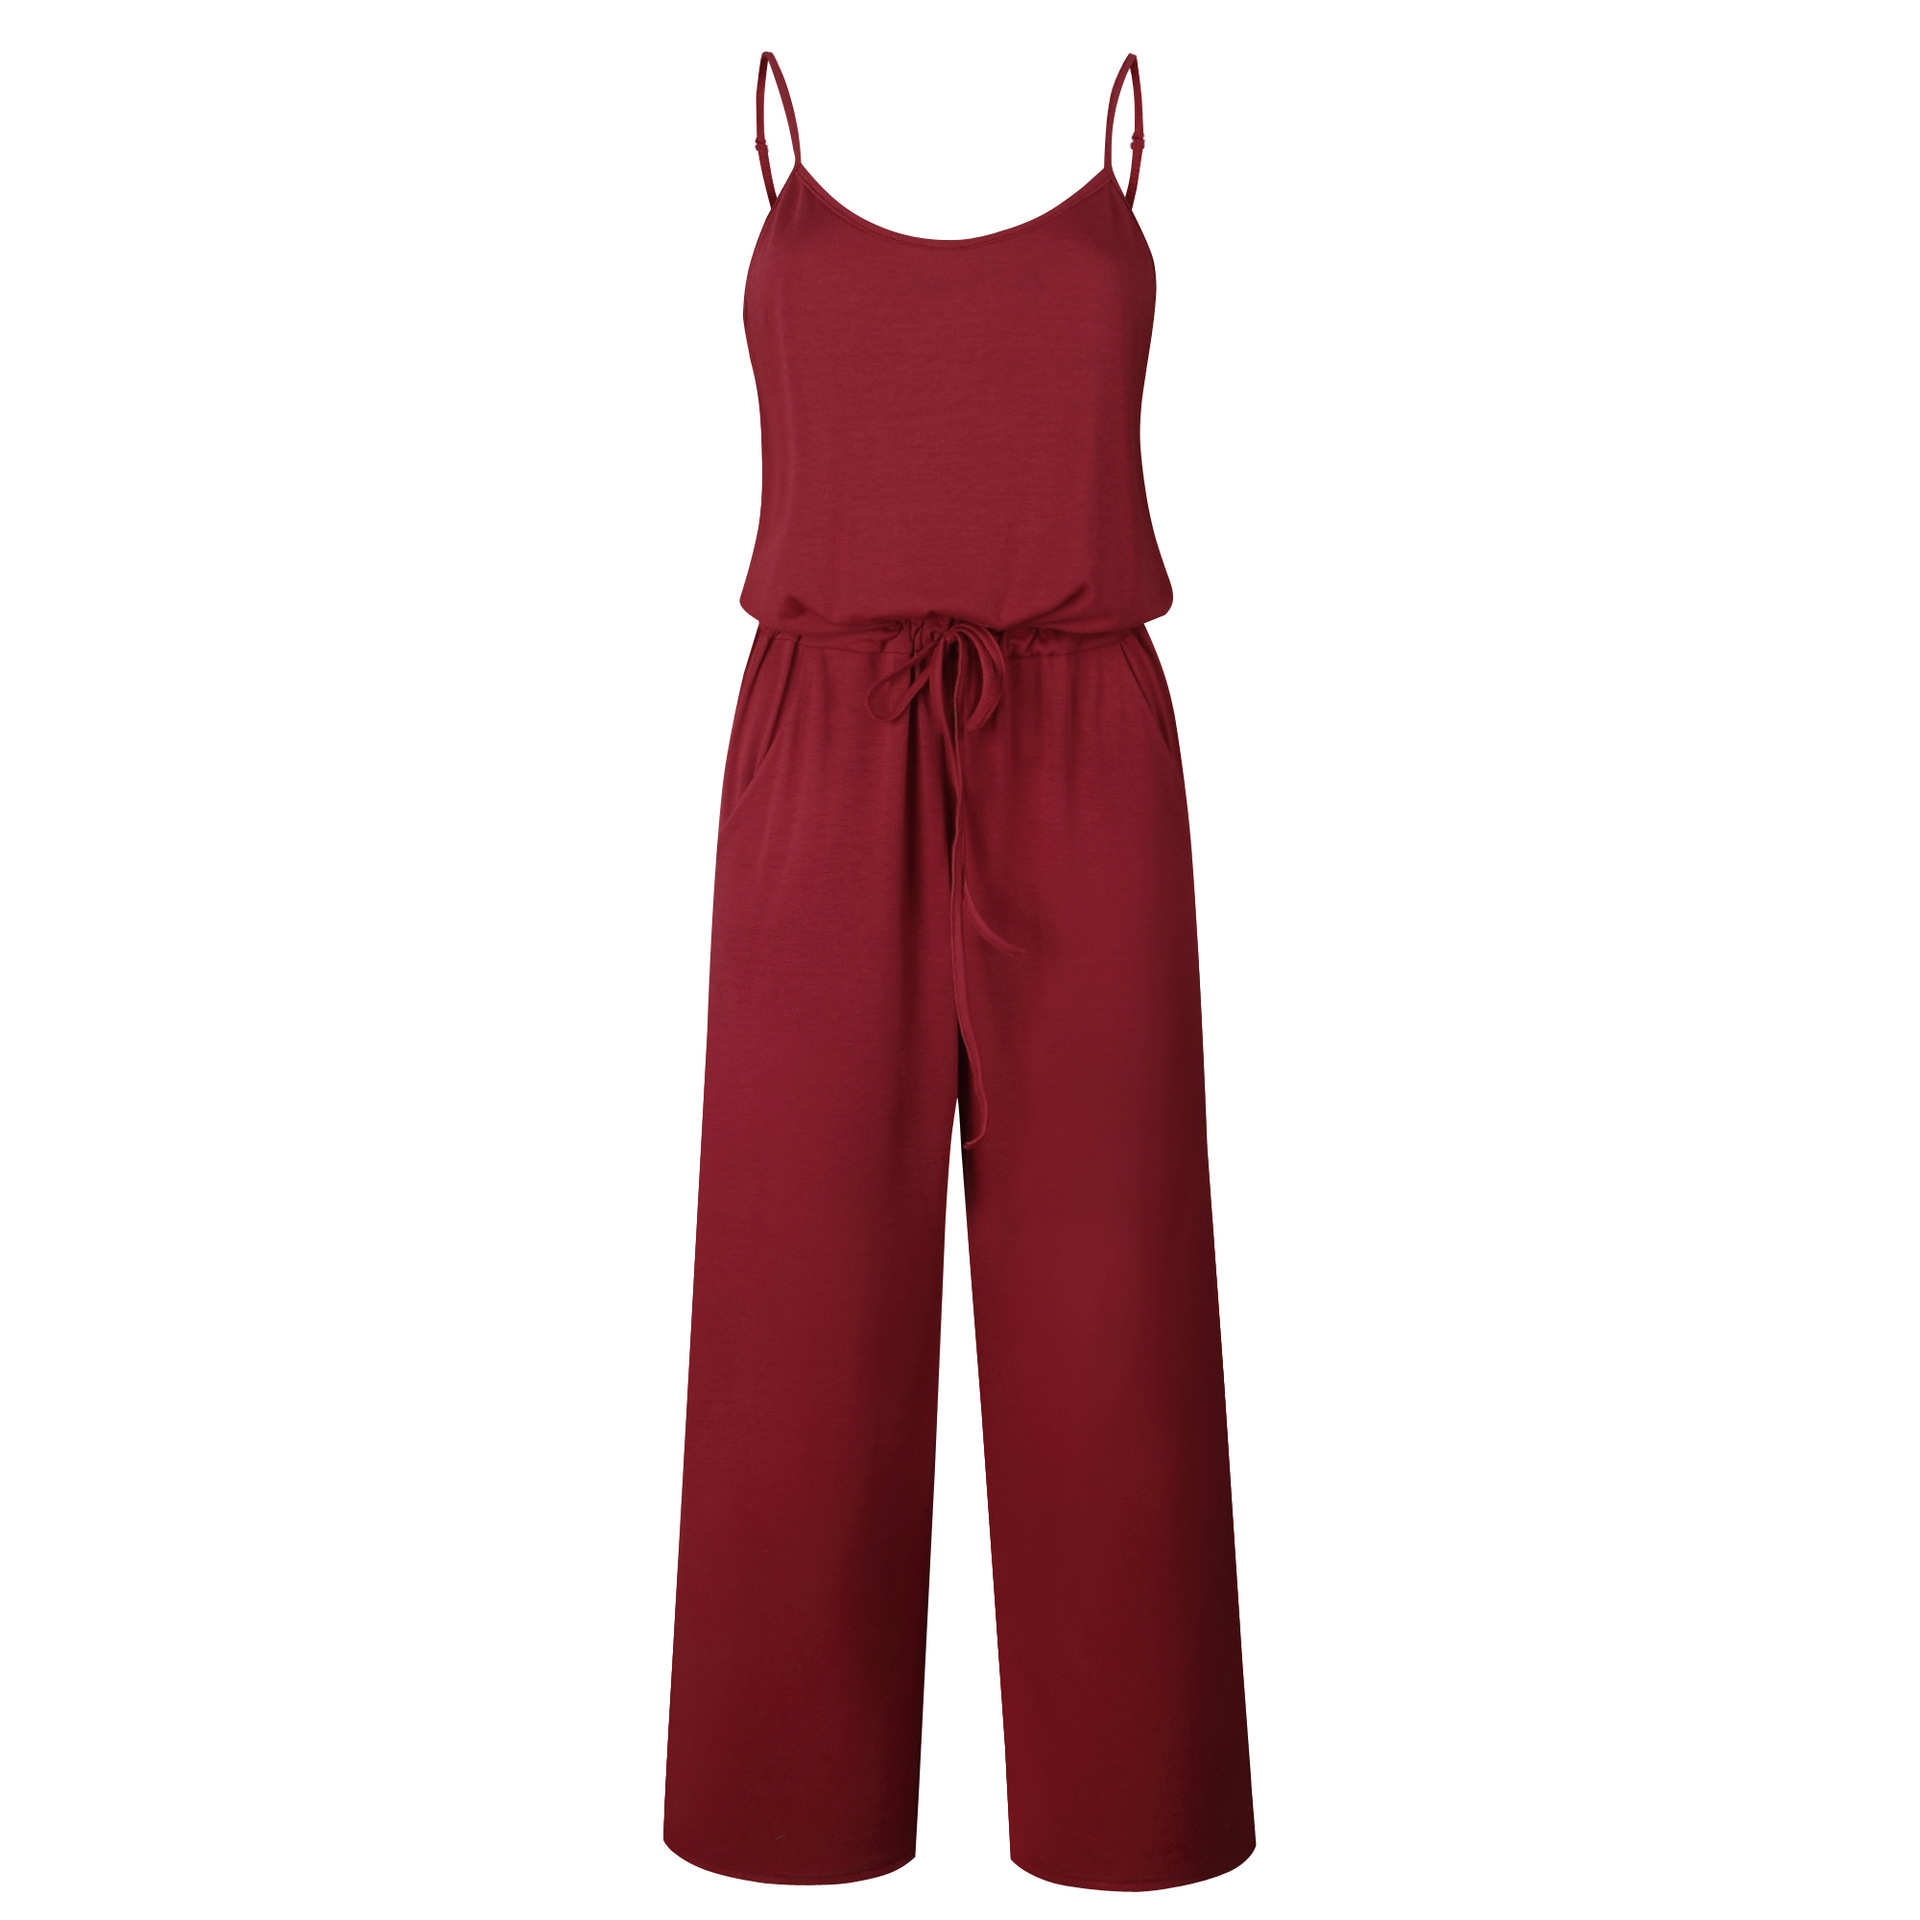 Spaghetti Strap Jumpsuit Women 2018 Summer Long Pants Floral Print Rompers Beach Casual Jumpsuits Sleeveless Sashes Playsuits 61